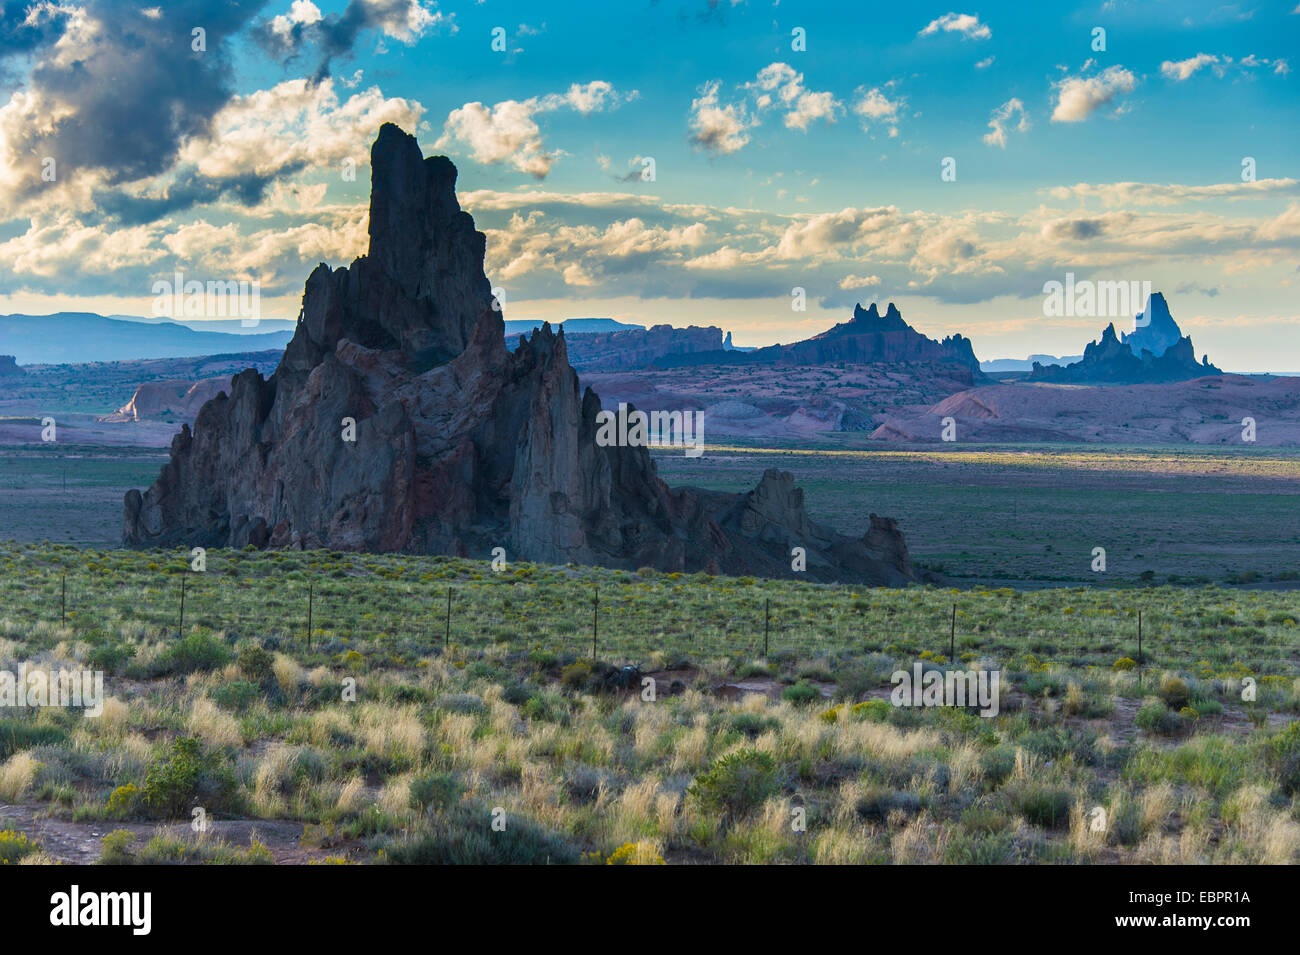 Rock formations in the late daylight near Monument Valley, Arizona, United States of America, North America - Stock Image